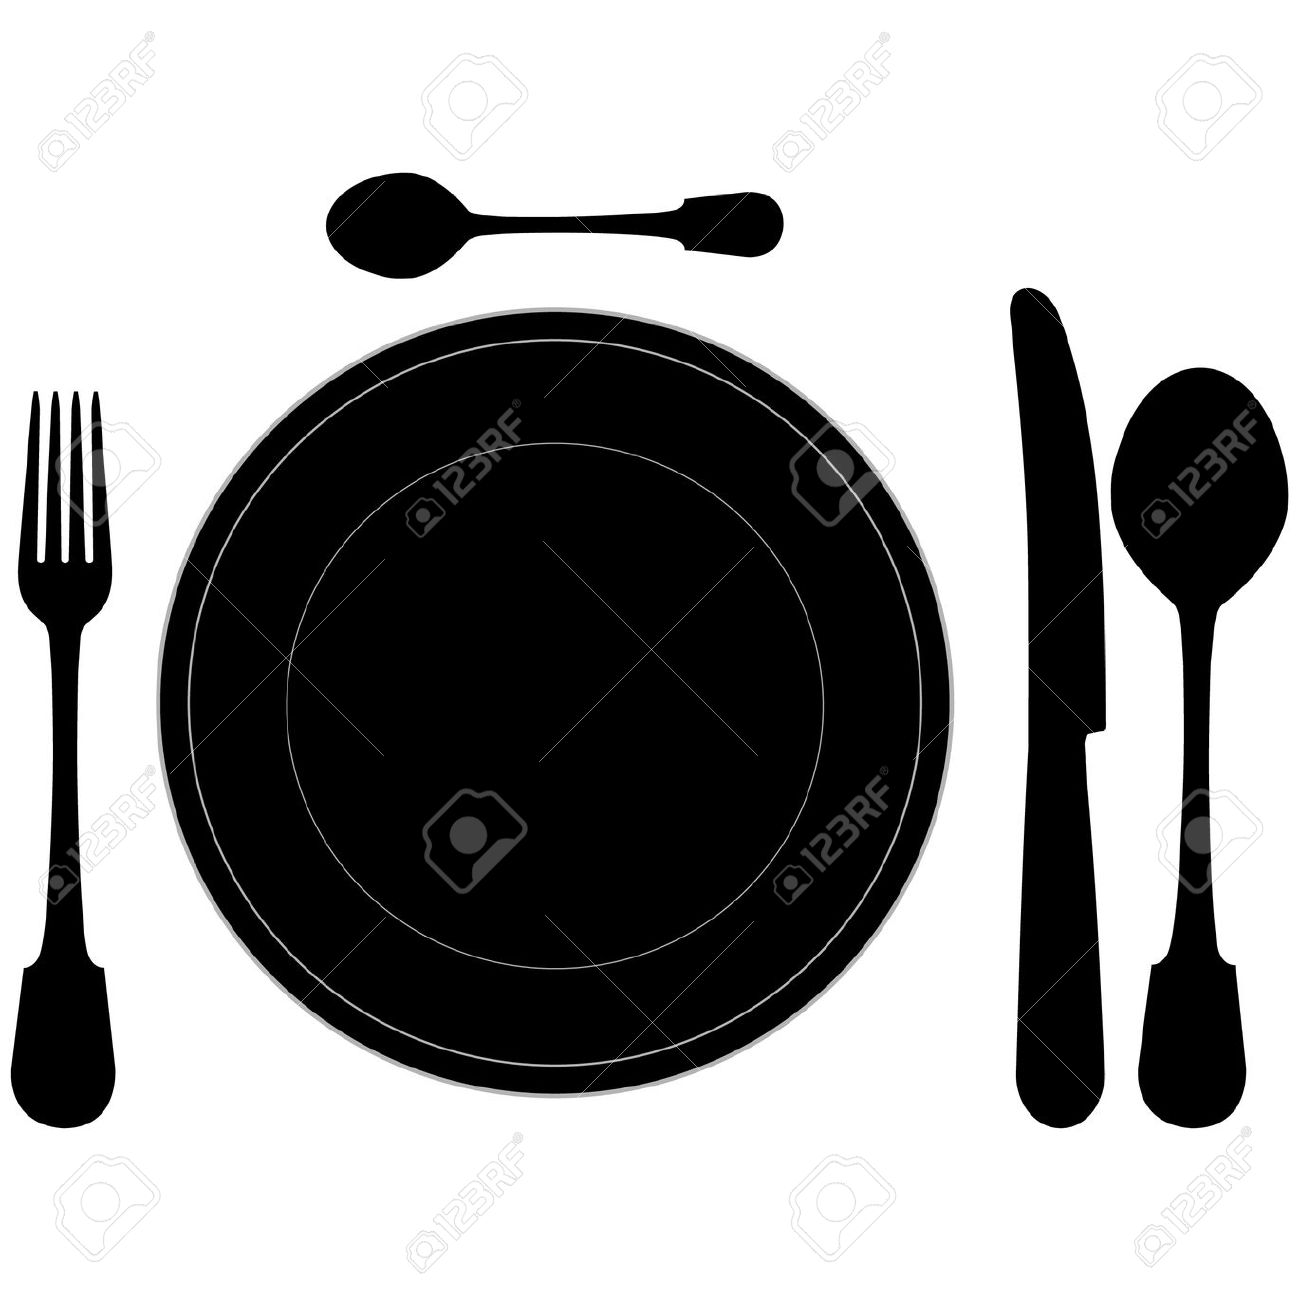 Table Setting Clipart Decoration Ideas.